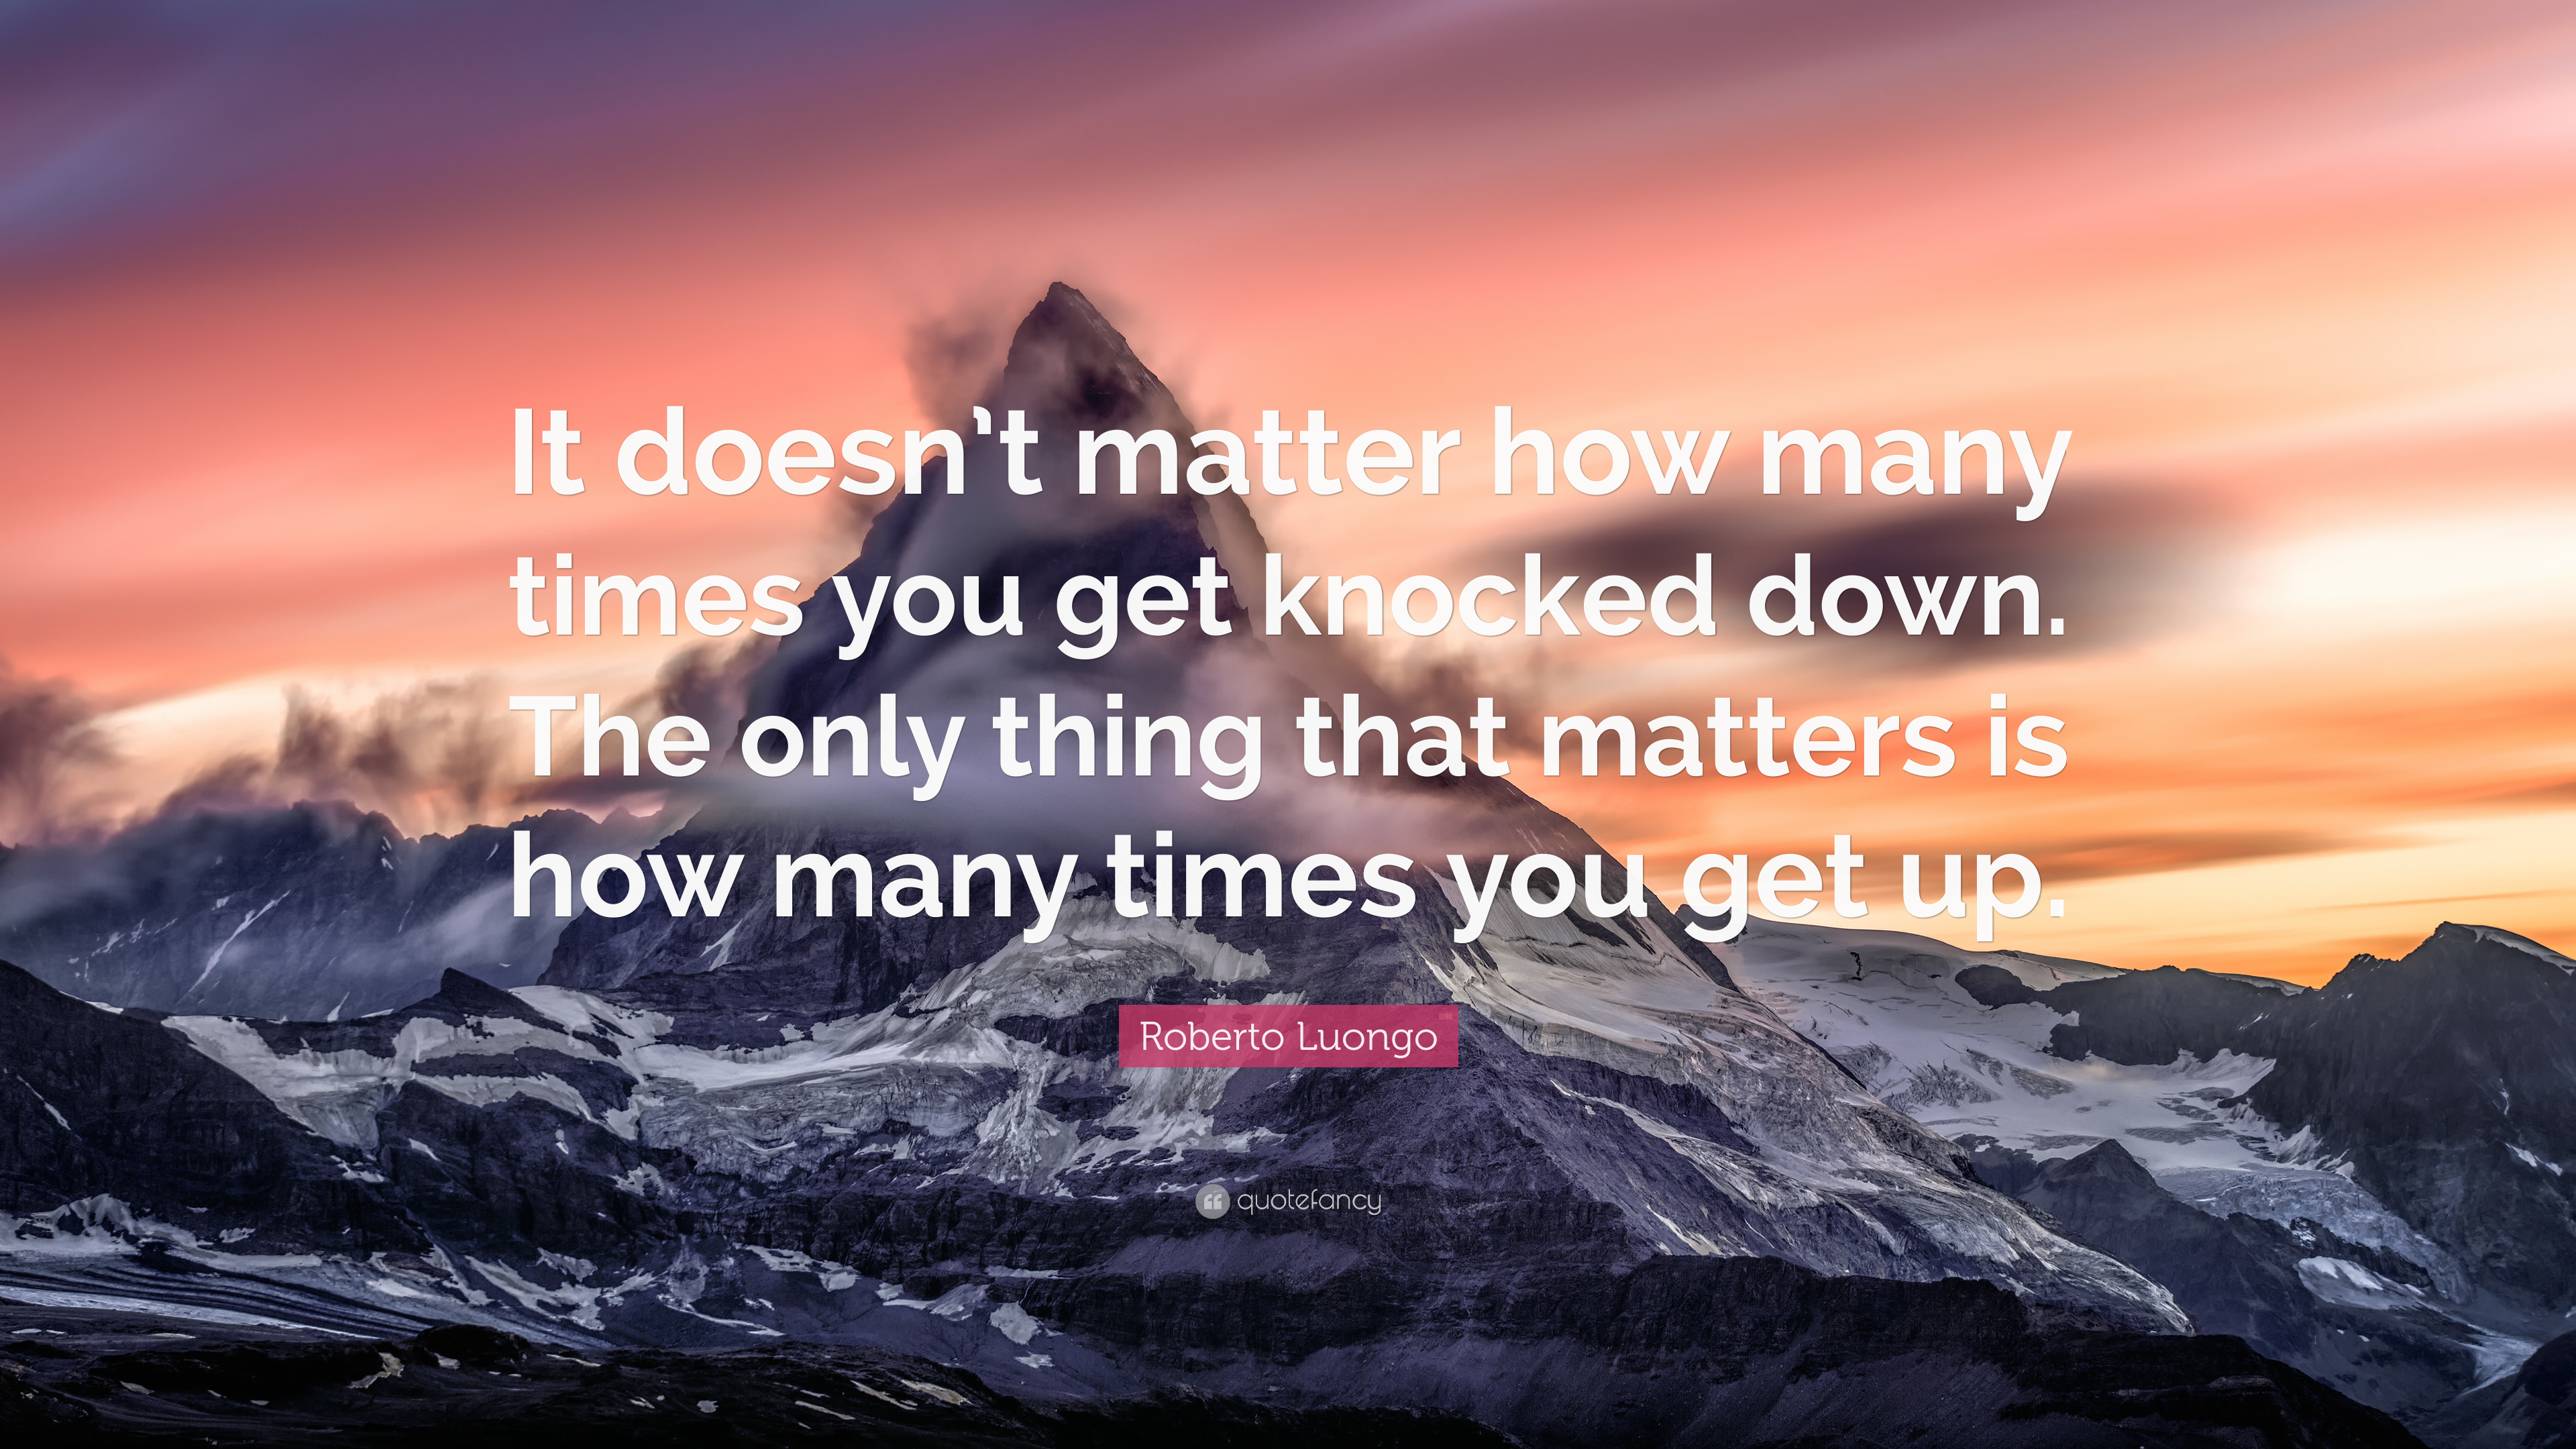 Roberto Luongo Quote It Doesnt Matter How Many Times You Get